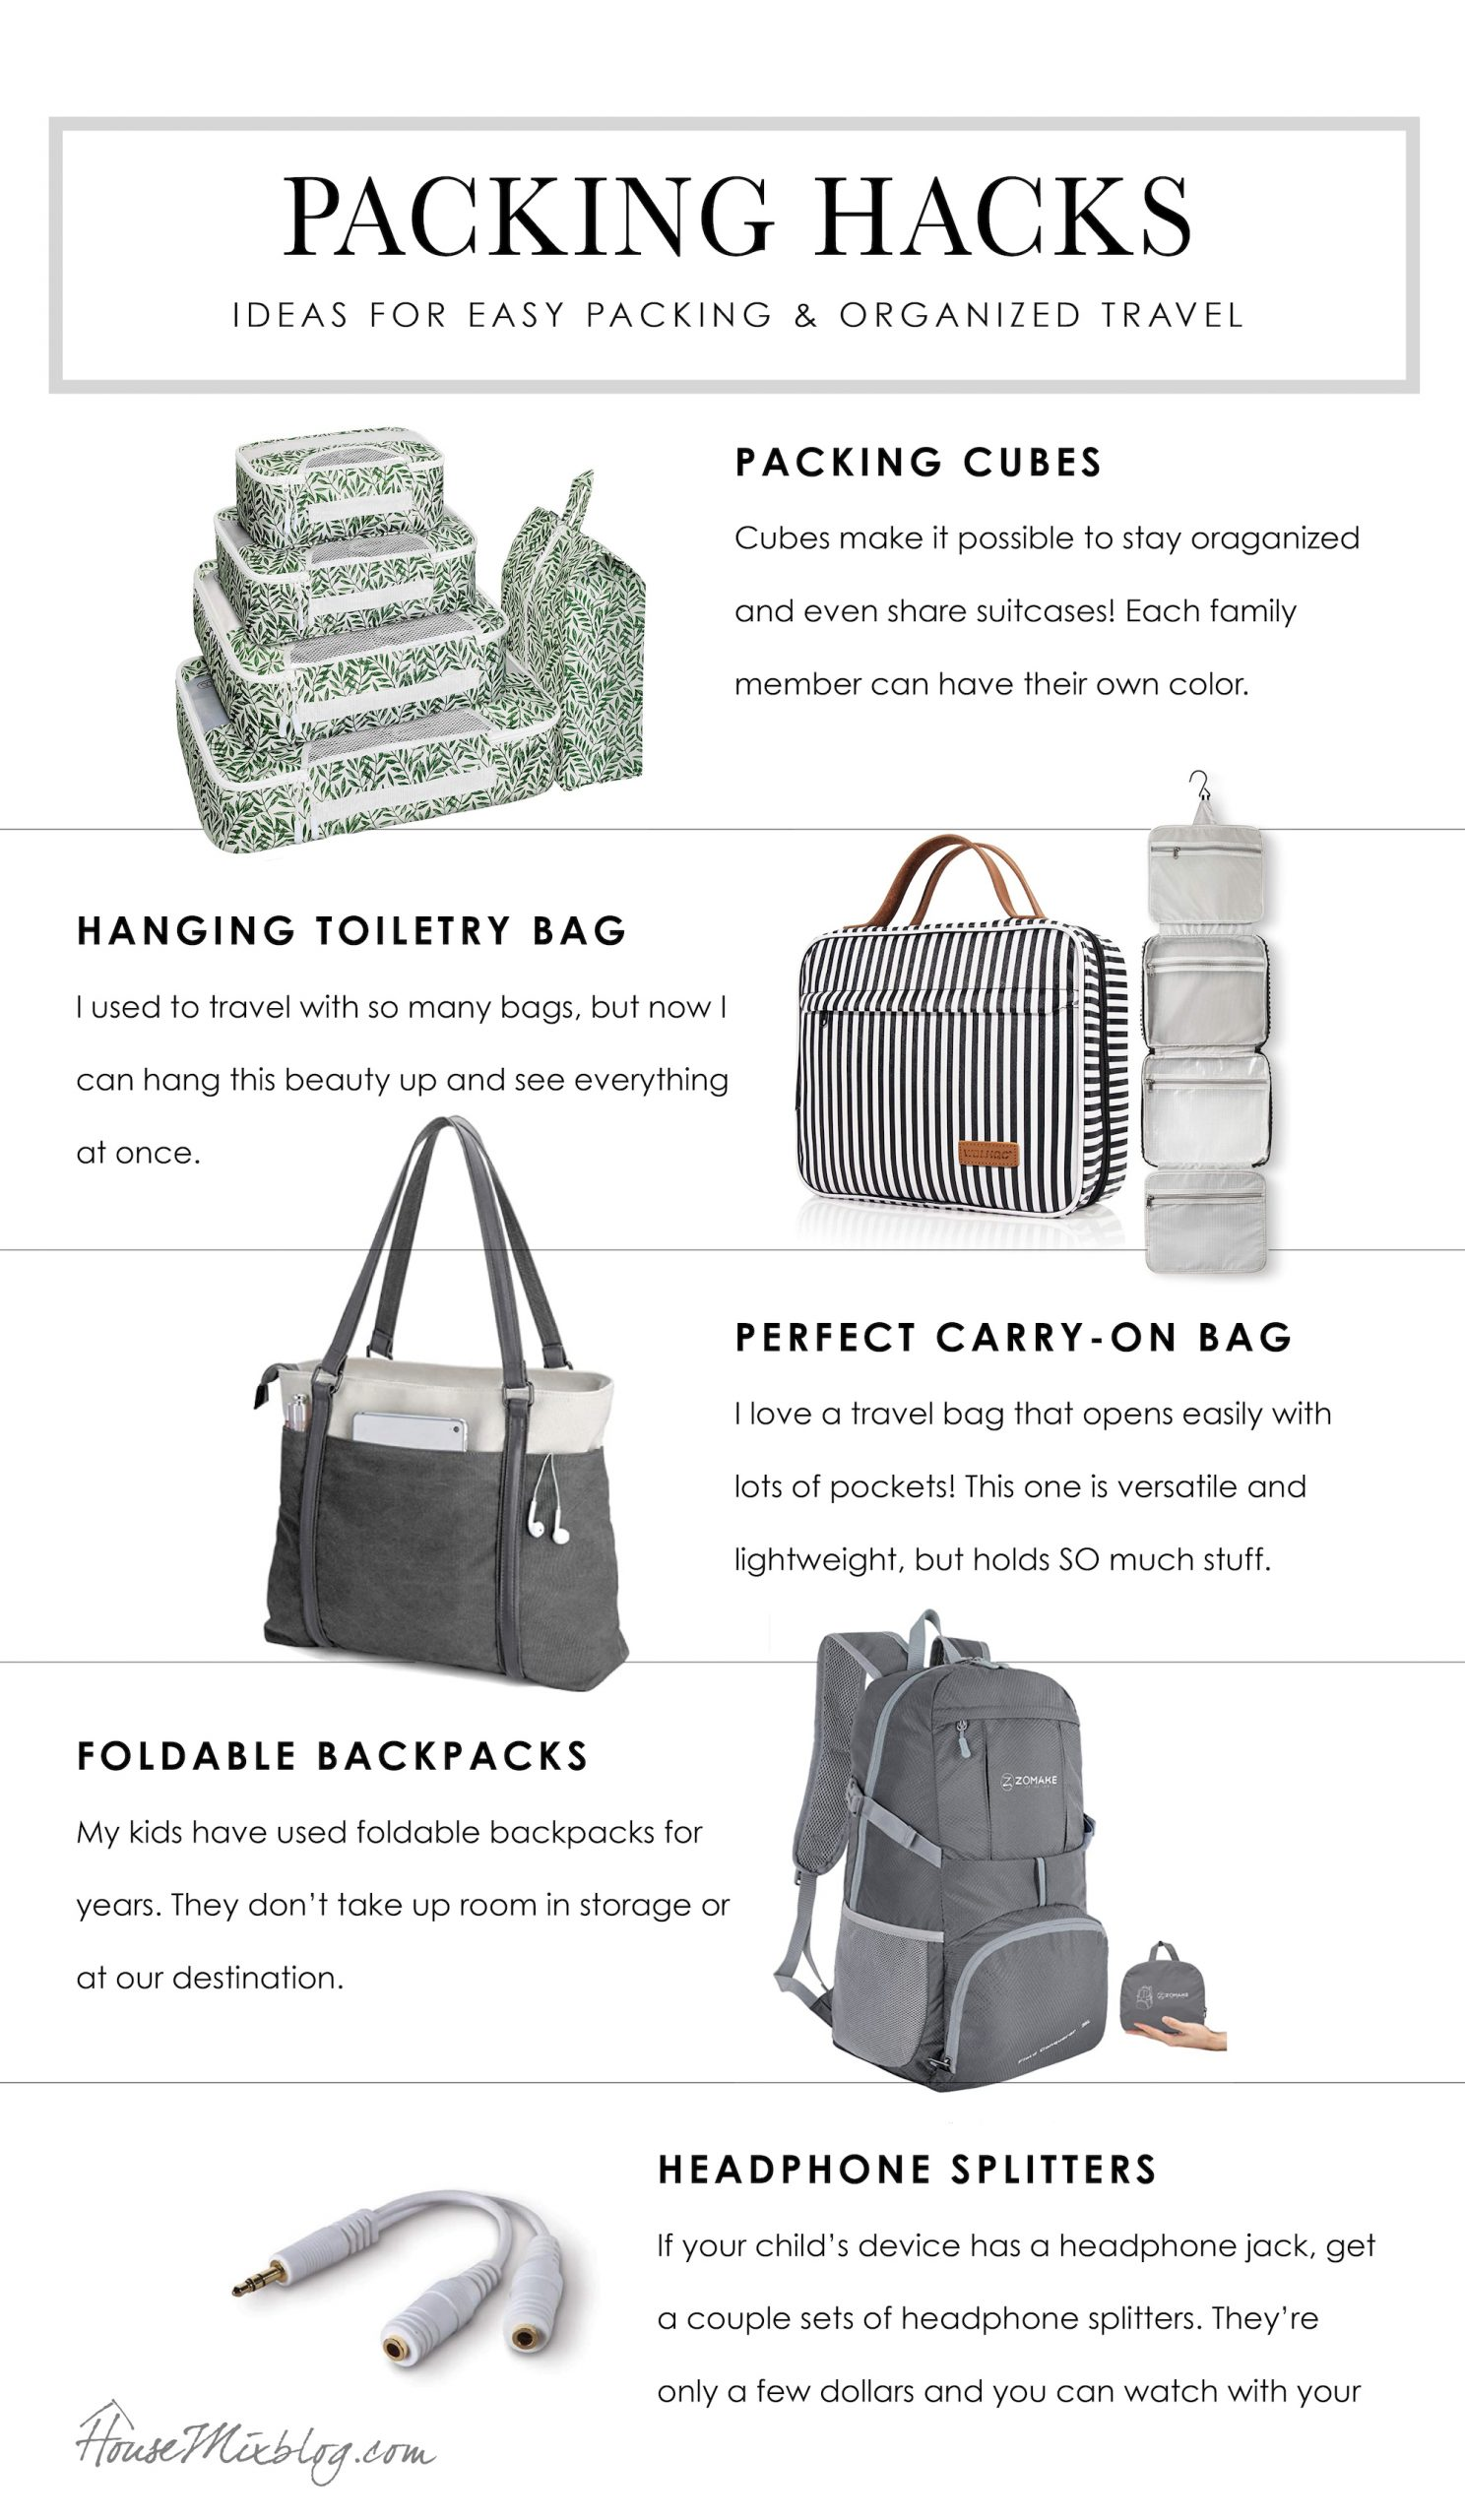 Packing hacks - Ideas and tips for easy packing and organized travel